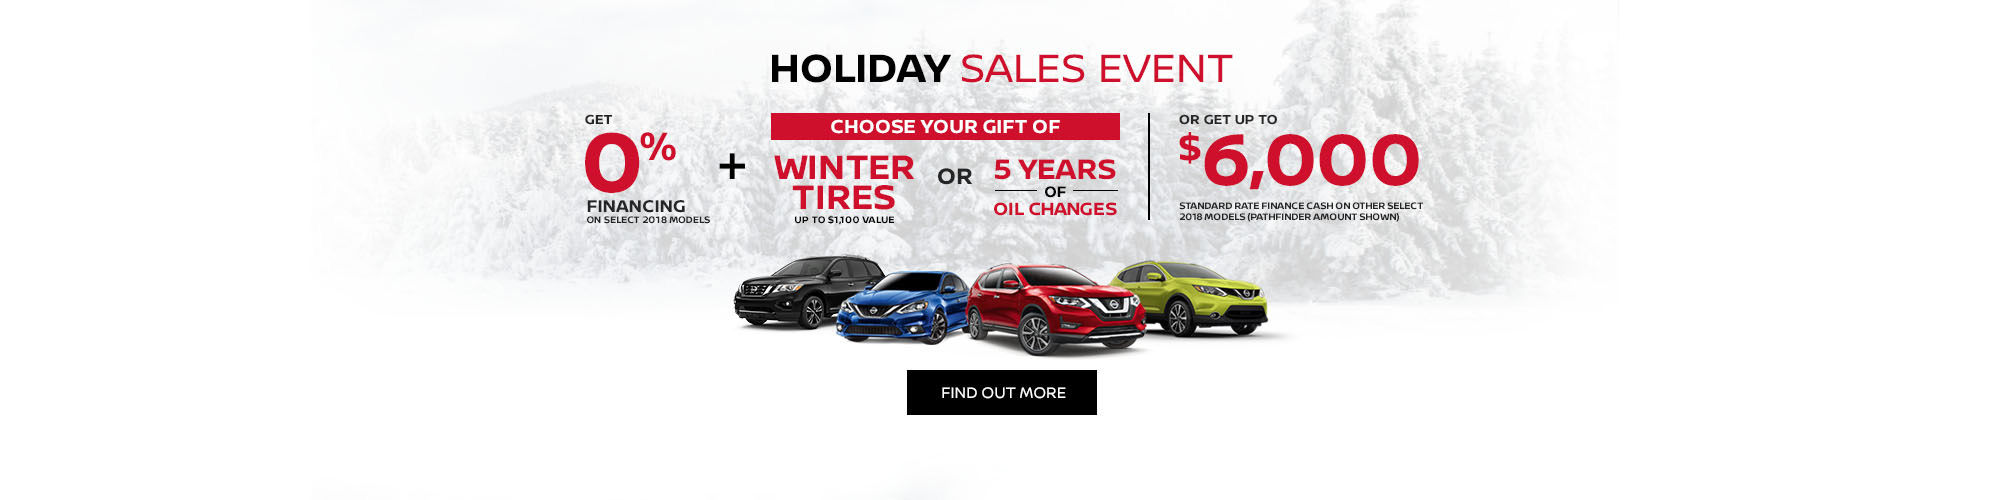 Nissan Holiday Sales Event